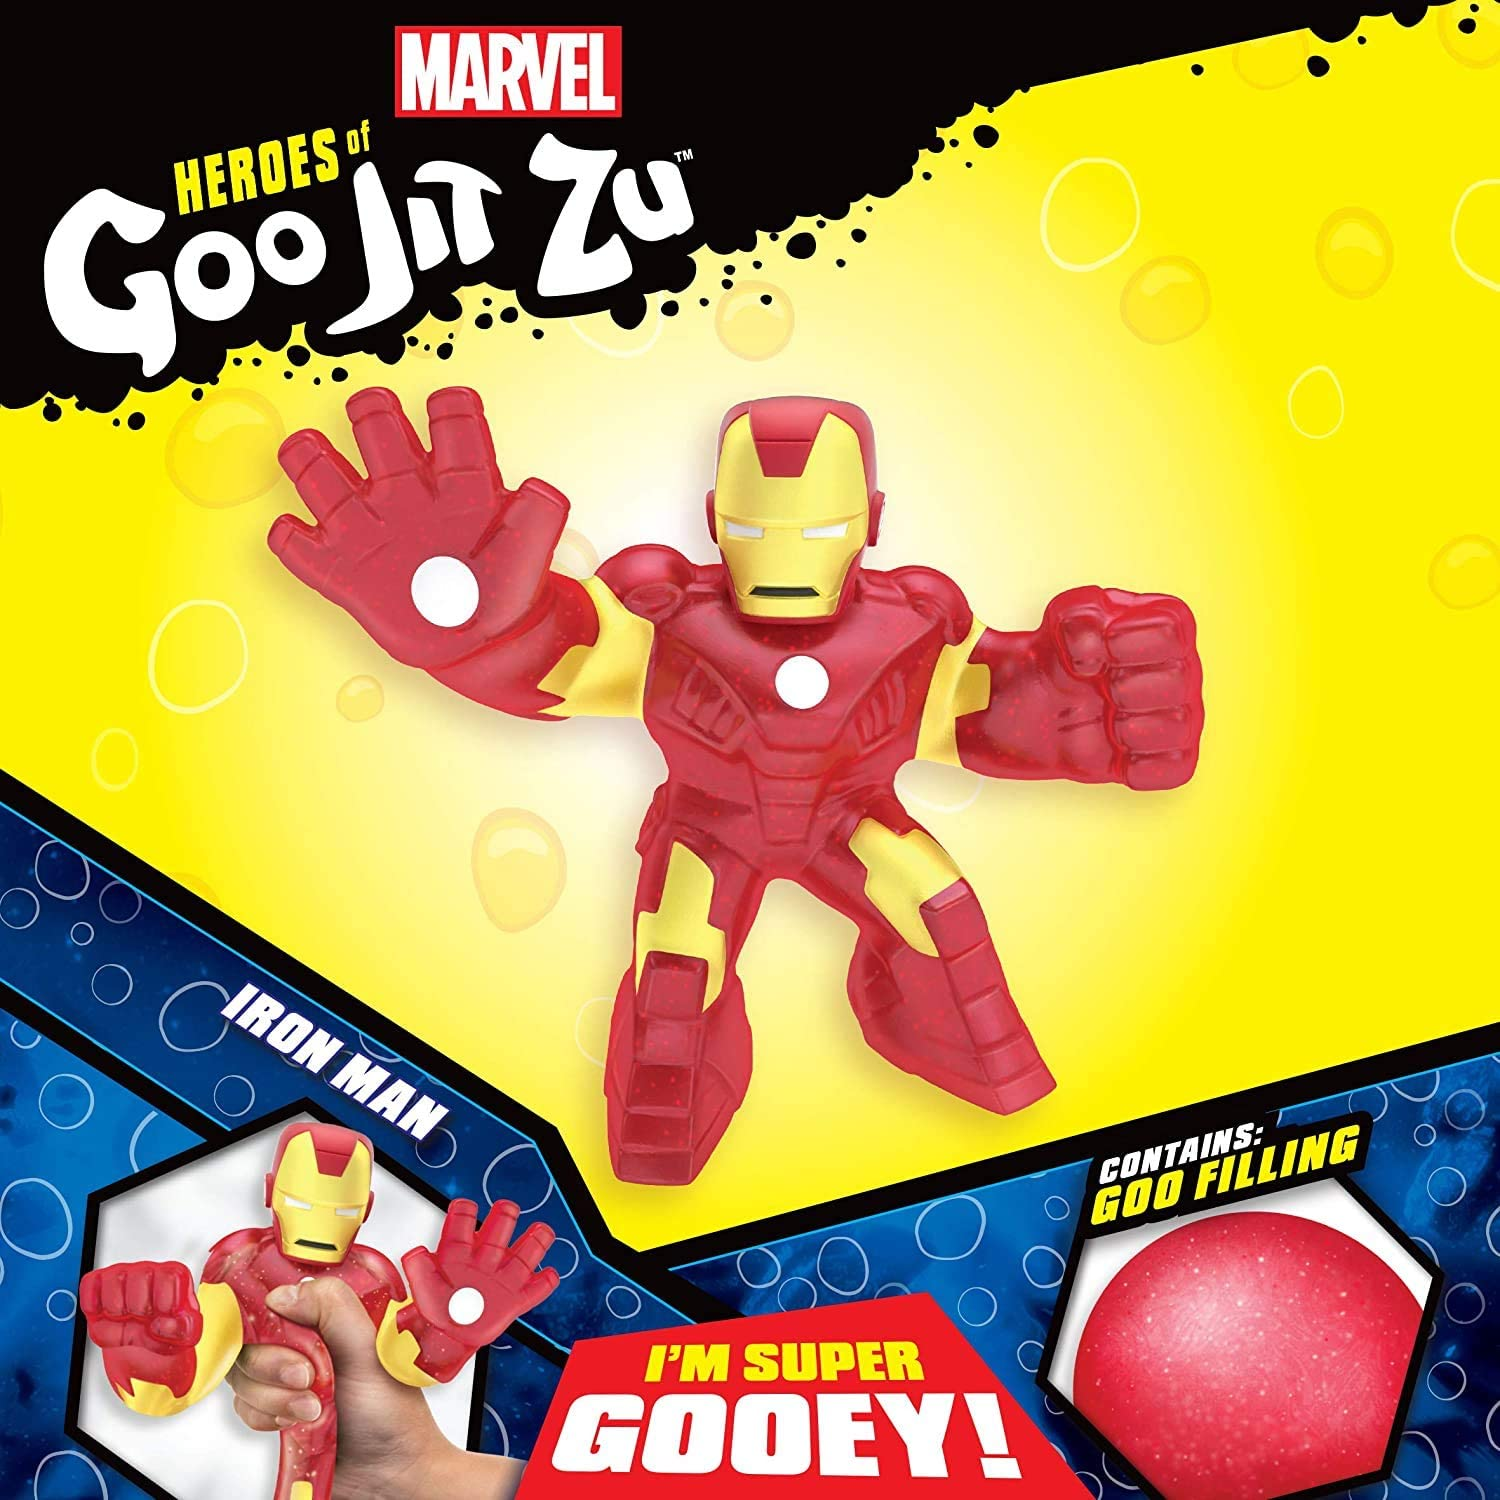 Moose Marvel Heroes of Goo Jit Zu Iron Man Stretchy Gooey Goo Action Figure